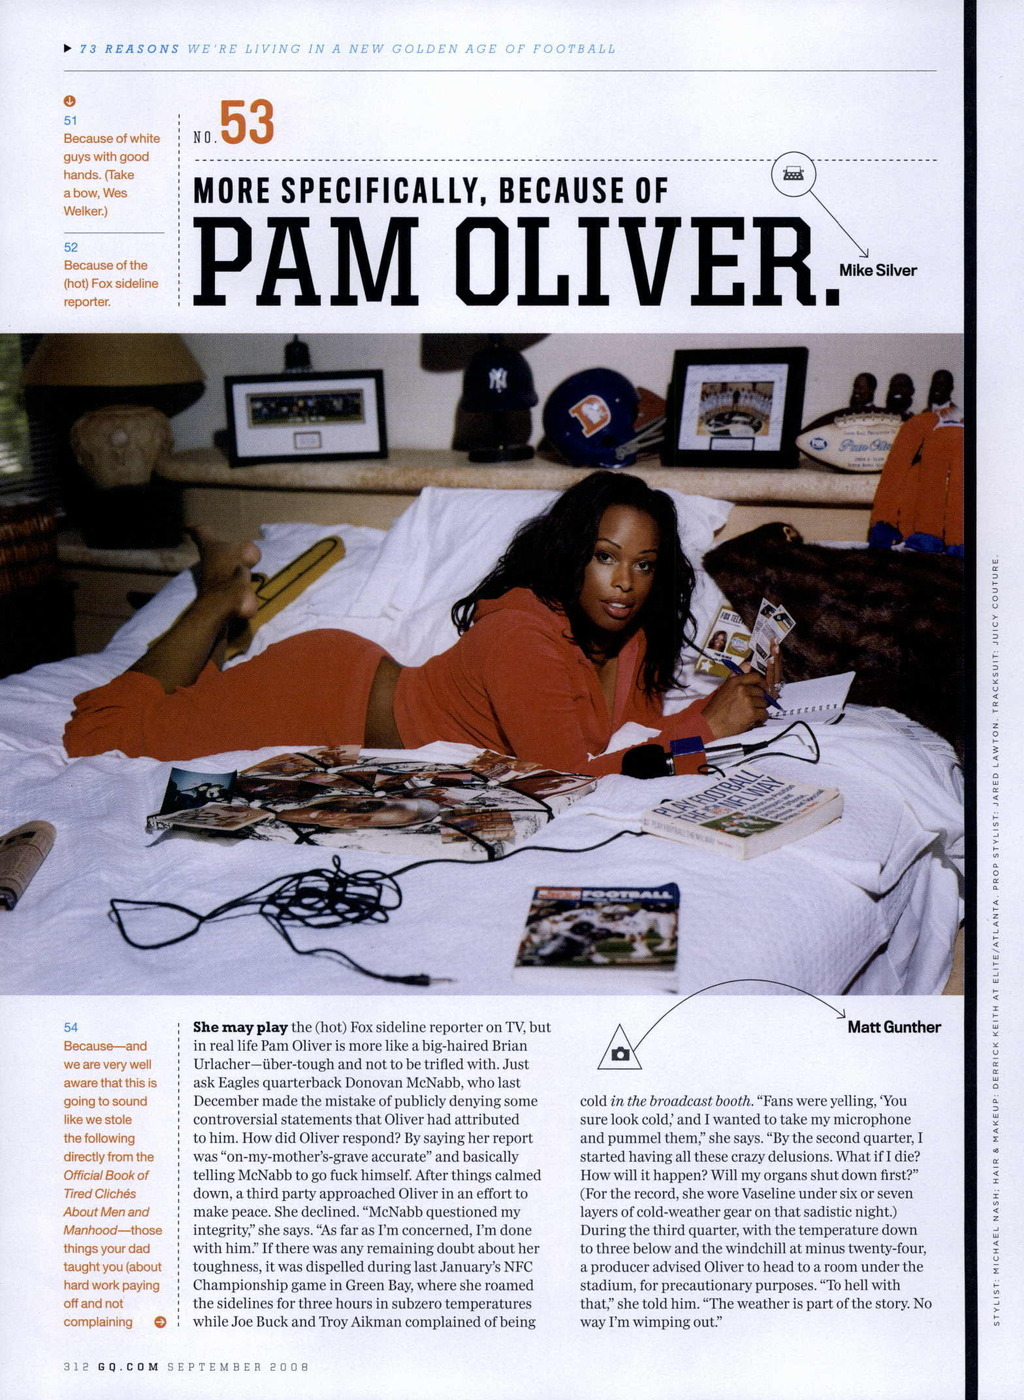 Pam Oliver Husband Alvin Whitney 1 Day Ago What The picturePam Oliver Husband